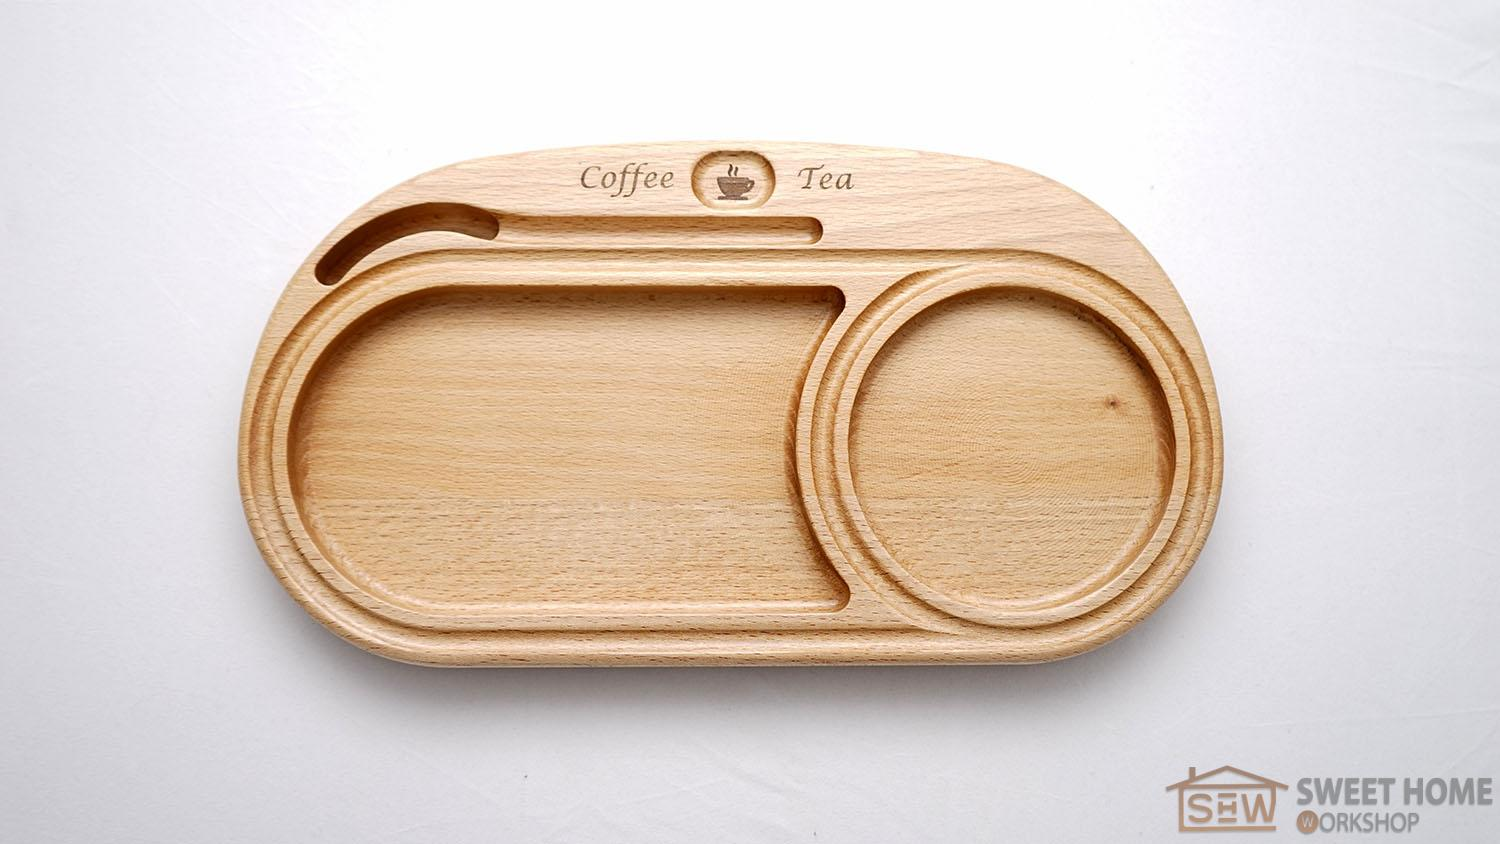 Plate for serving coffee or tea with deserts Drink Pad